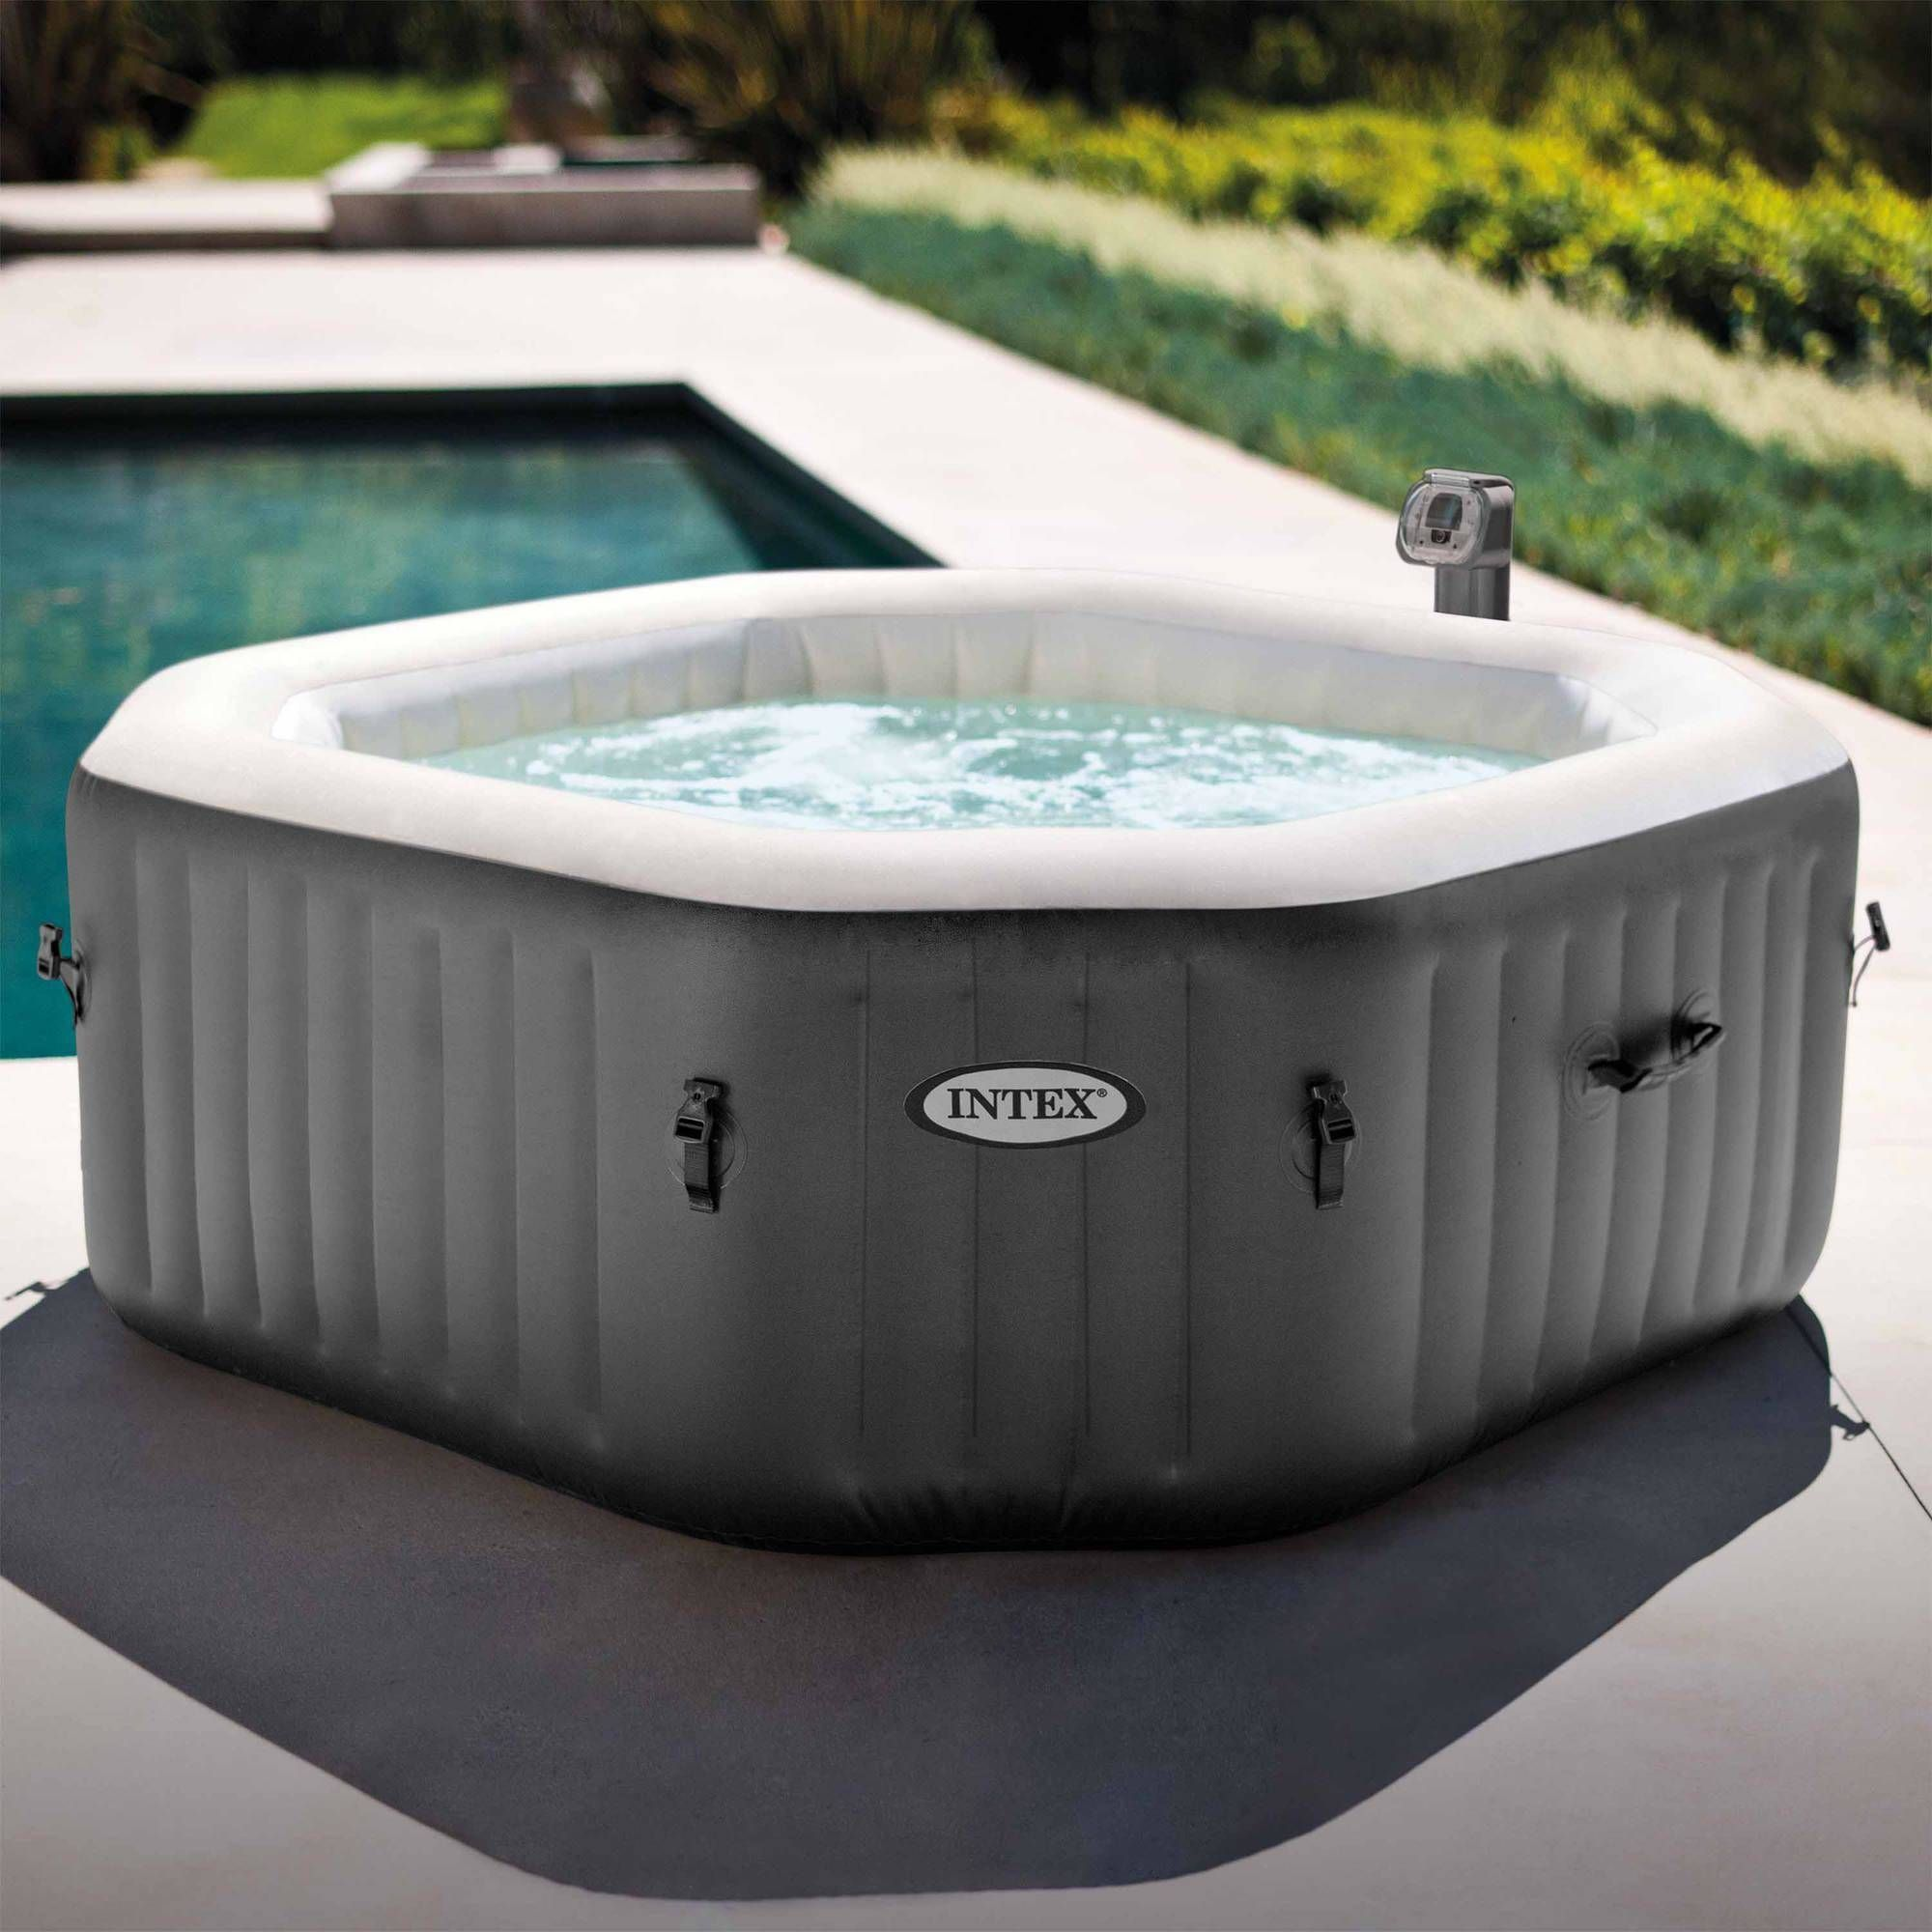 Patio Garden Intex Hot Tub Best Inflatable Hot Tub Jacuzzi